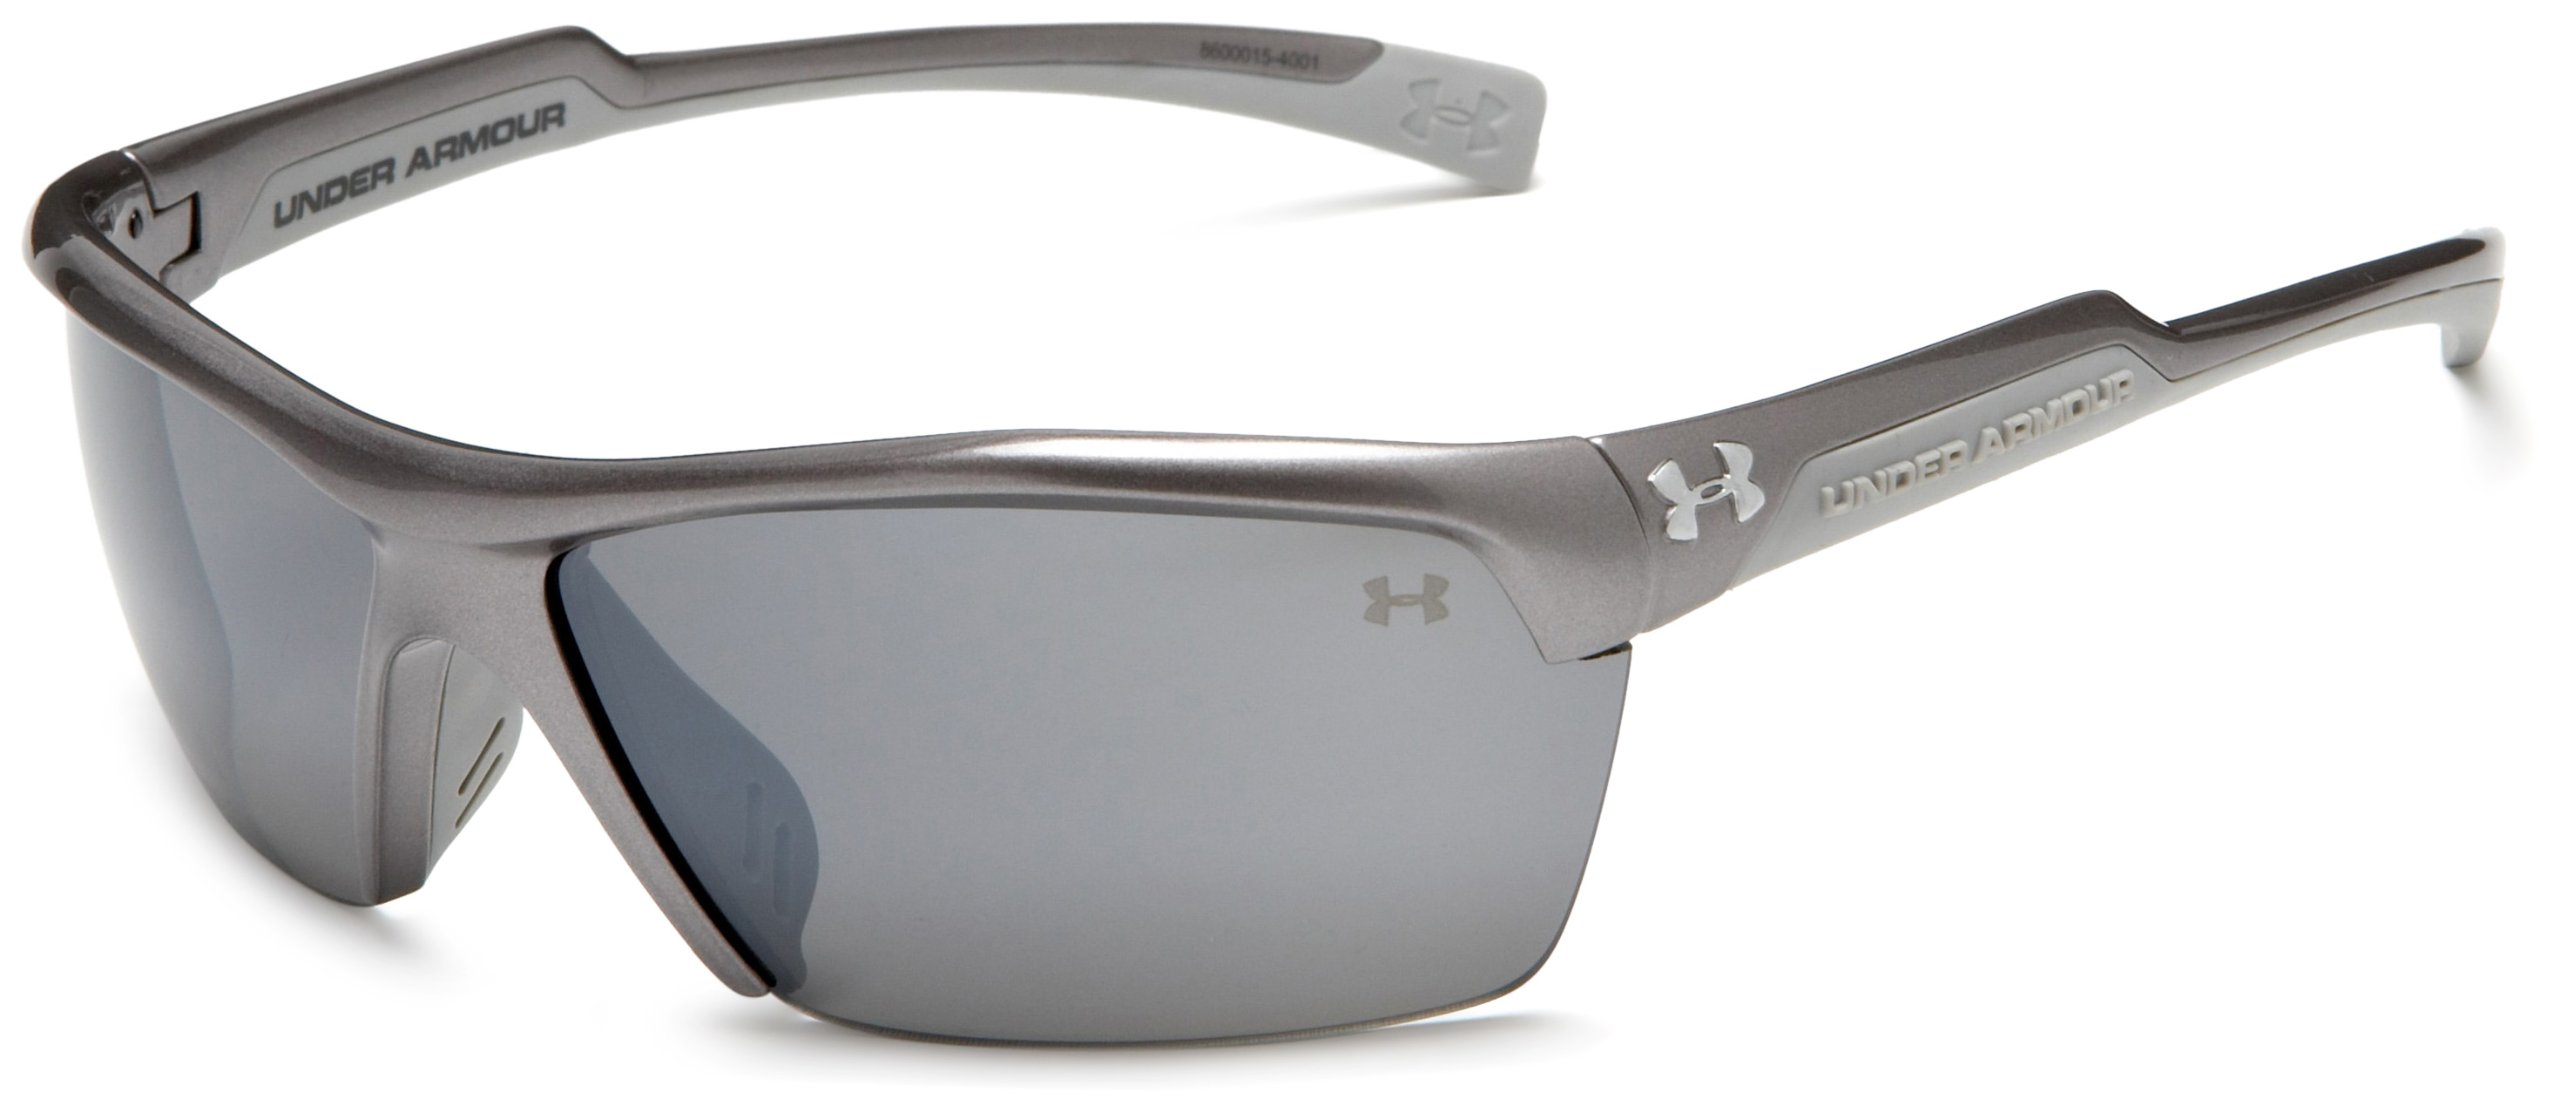 Under Armour Velocity Multiflection Sport Sunglasses, Shiny Metallic Graphite Frame/Gray Lens, one size by Under Armour